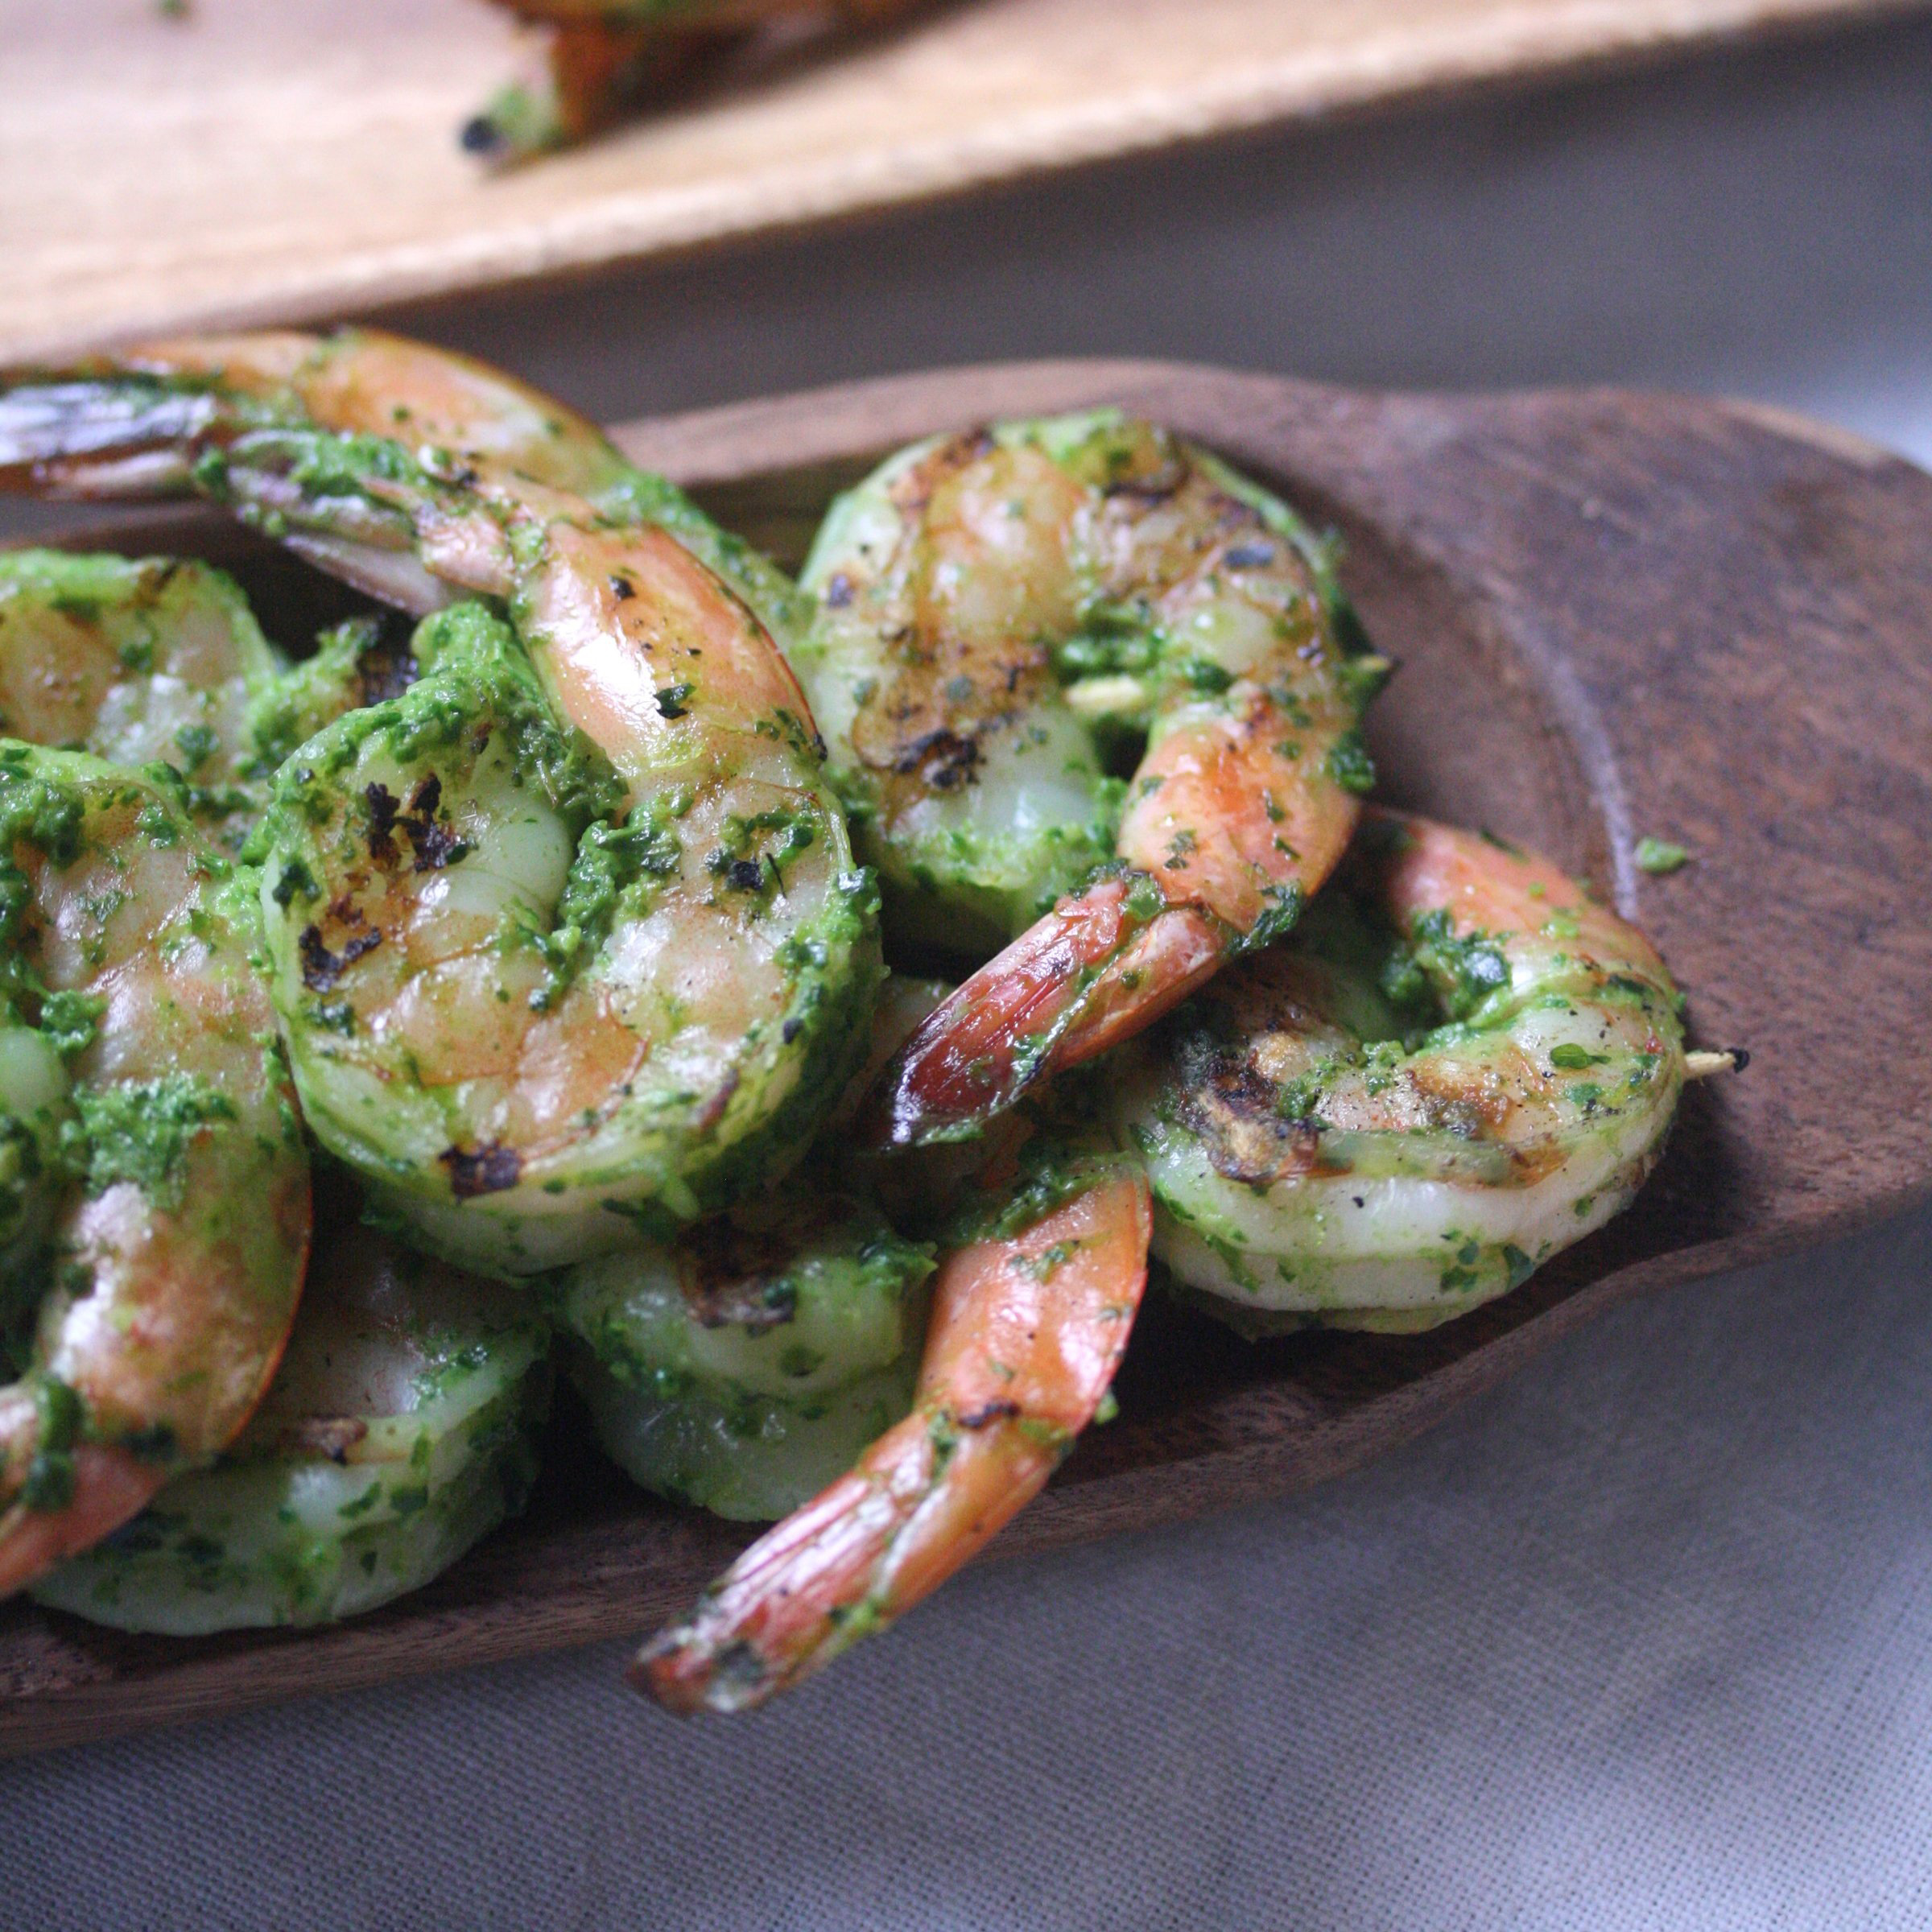 Grilled Shrimp with Green Harissa Recipe - Phoebe Lapine | Food & Wine